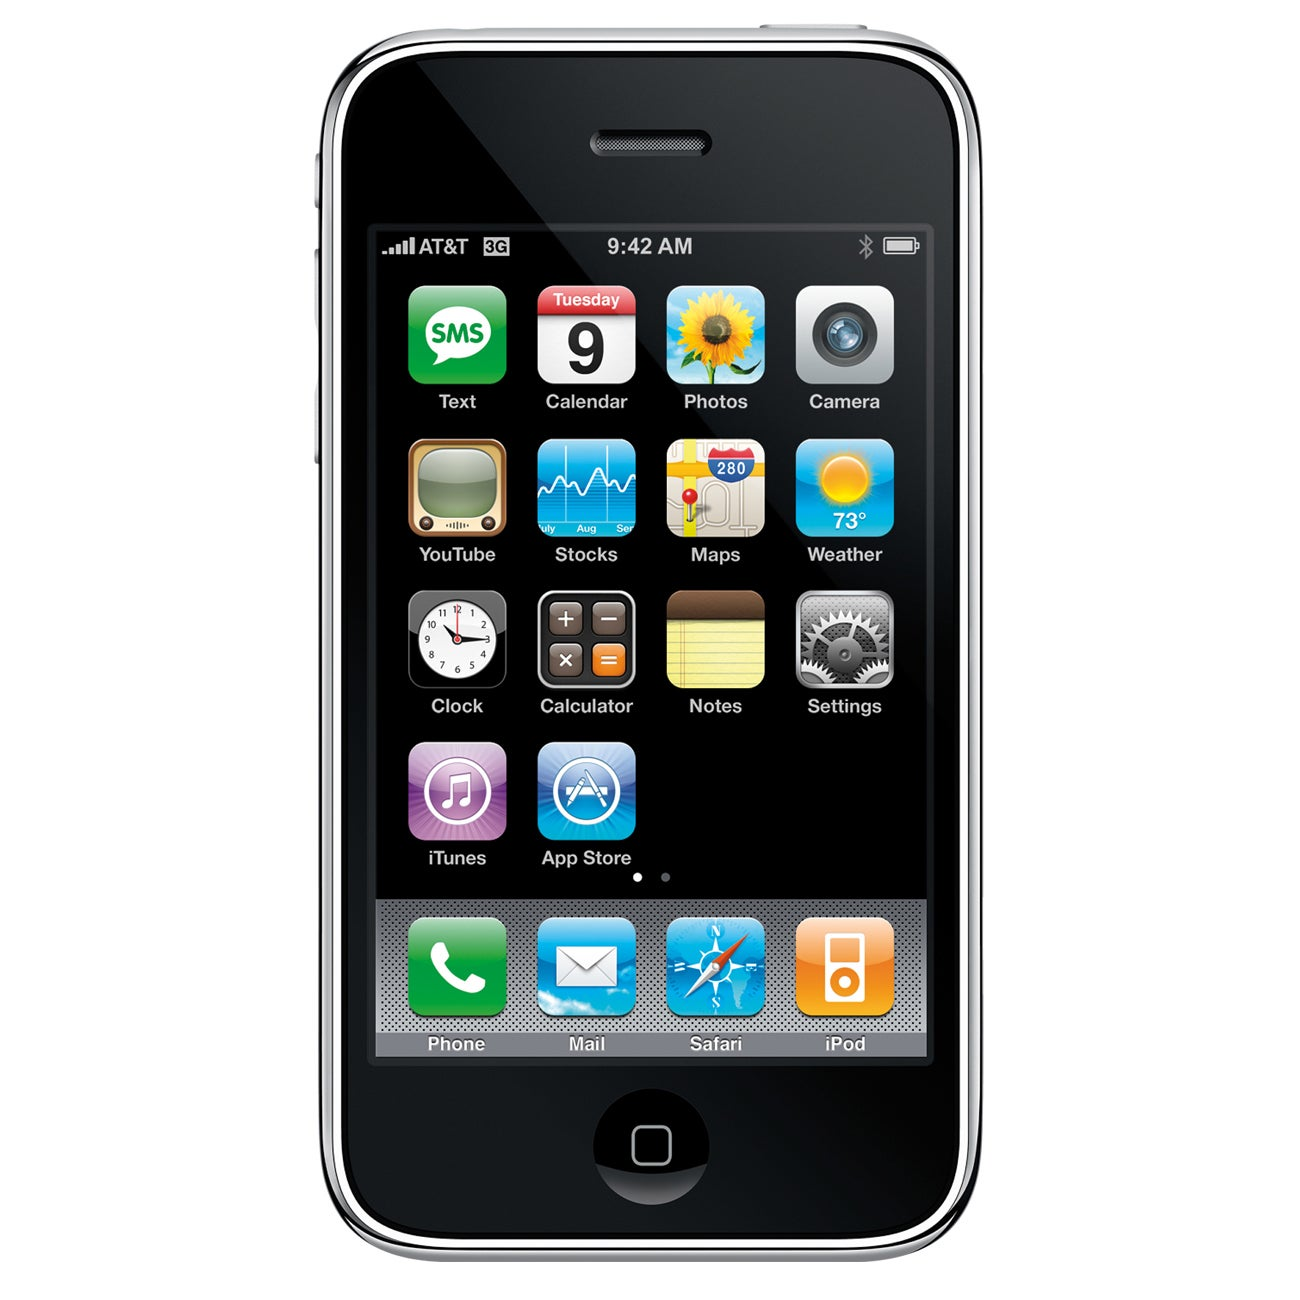 Apple iPhone 3GS Smartphone - Wi-Fi - 3.5G - Bar - Black